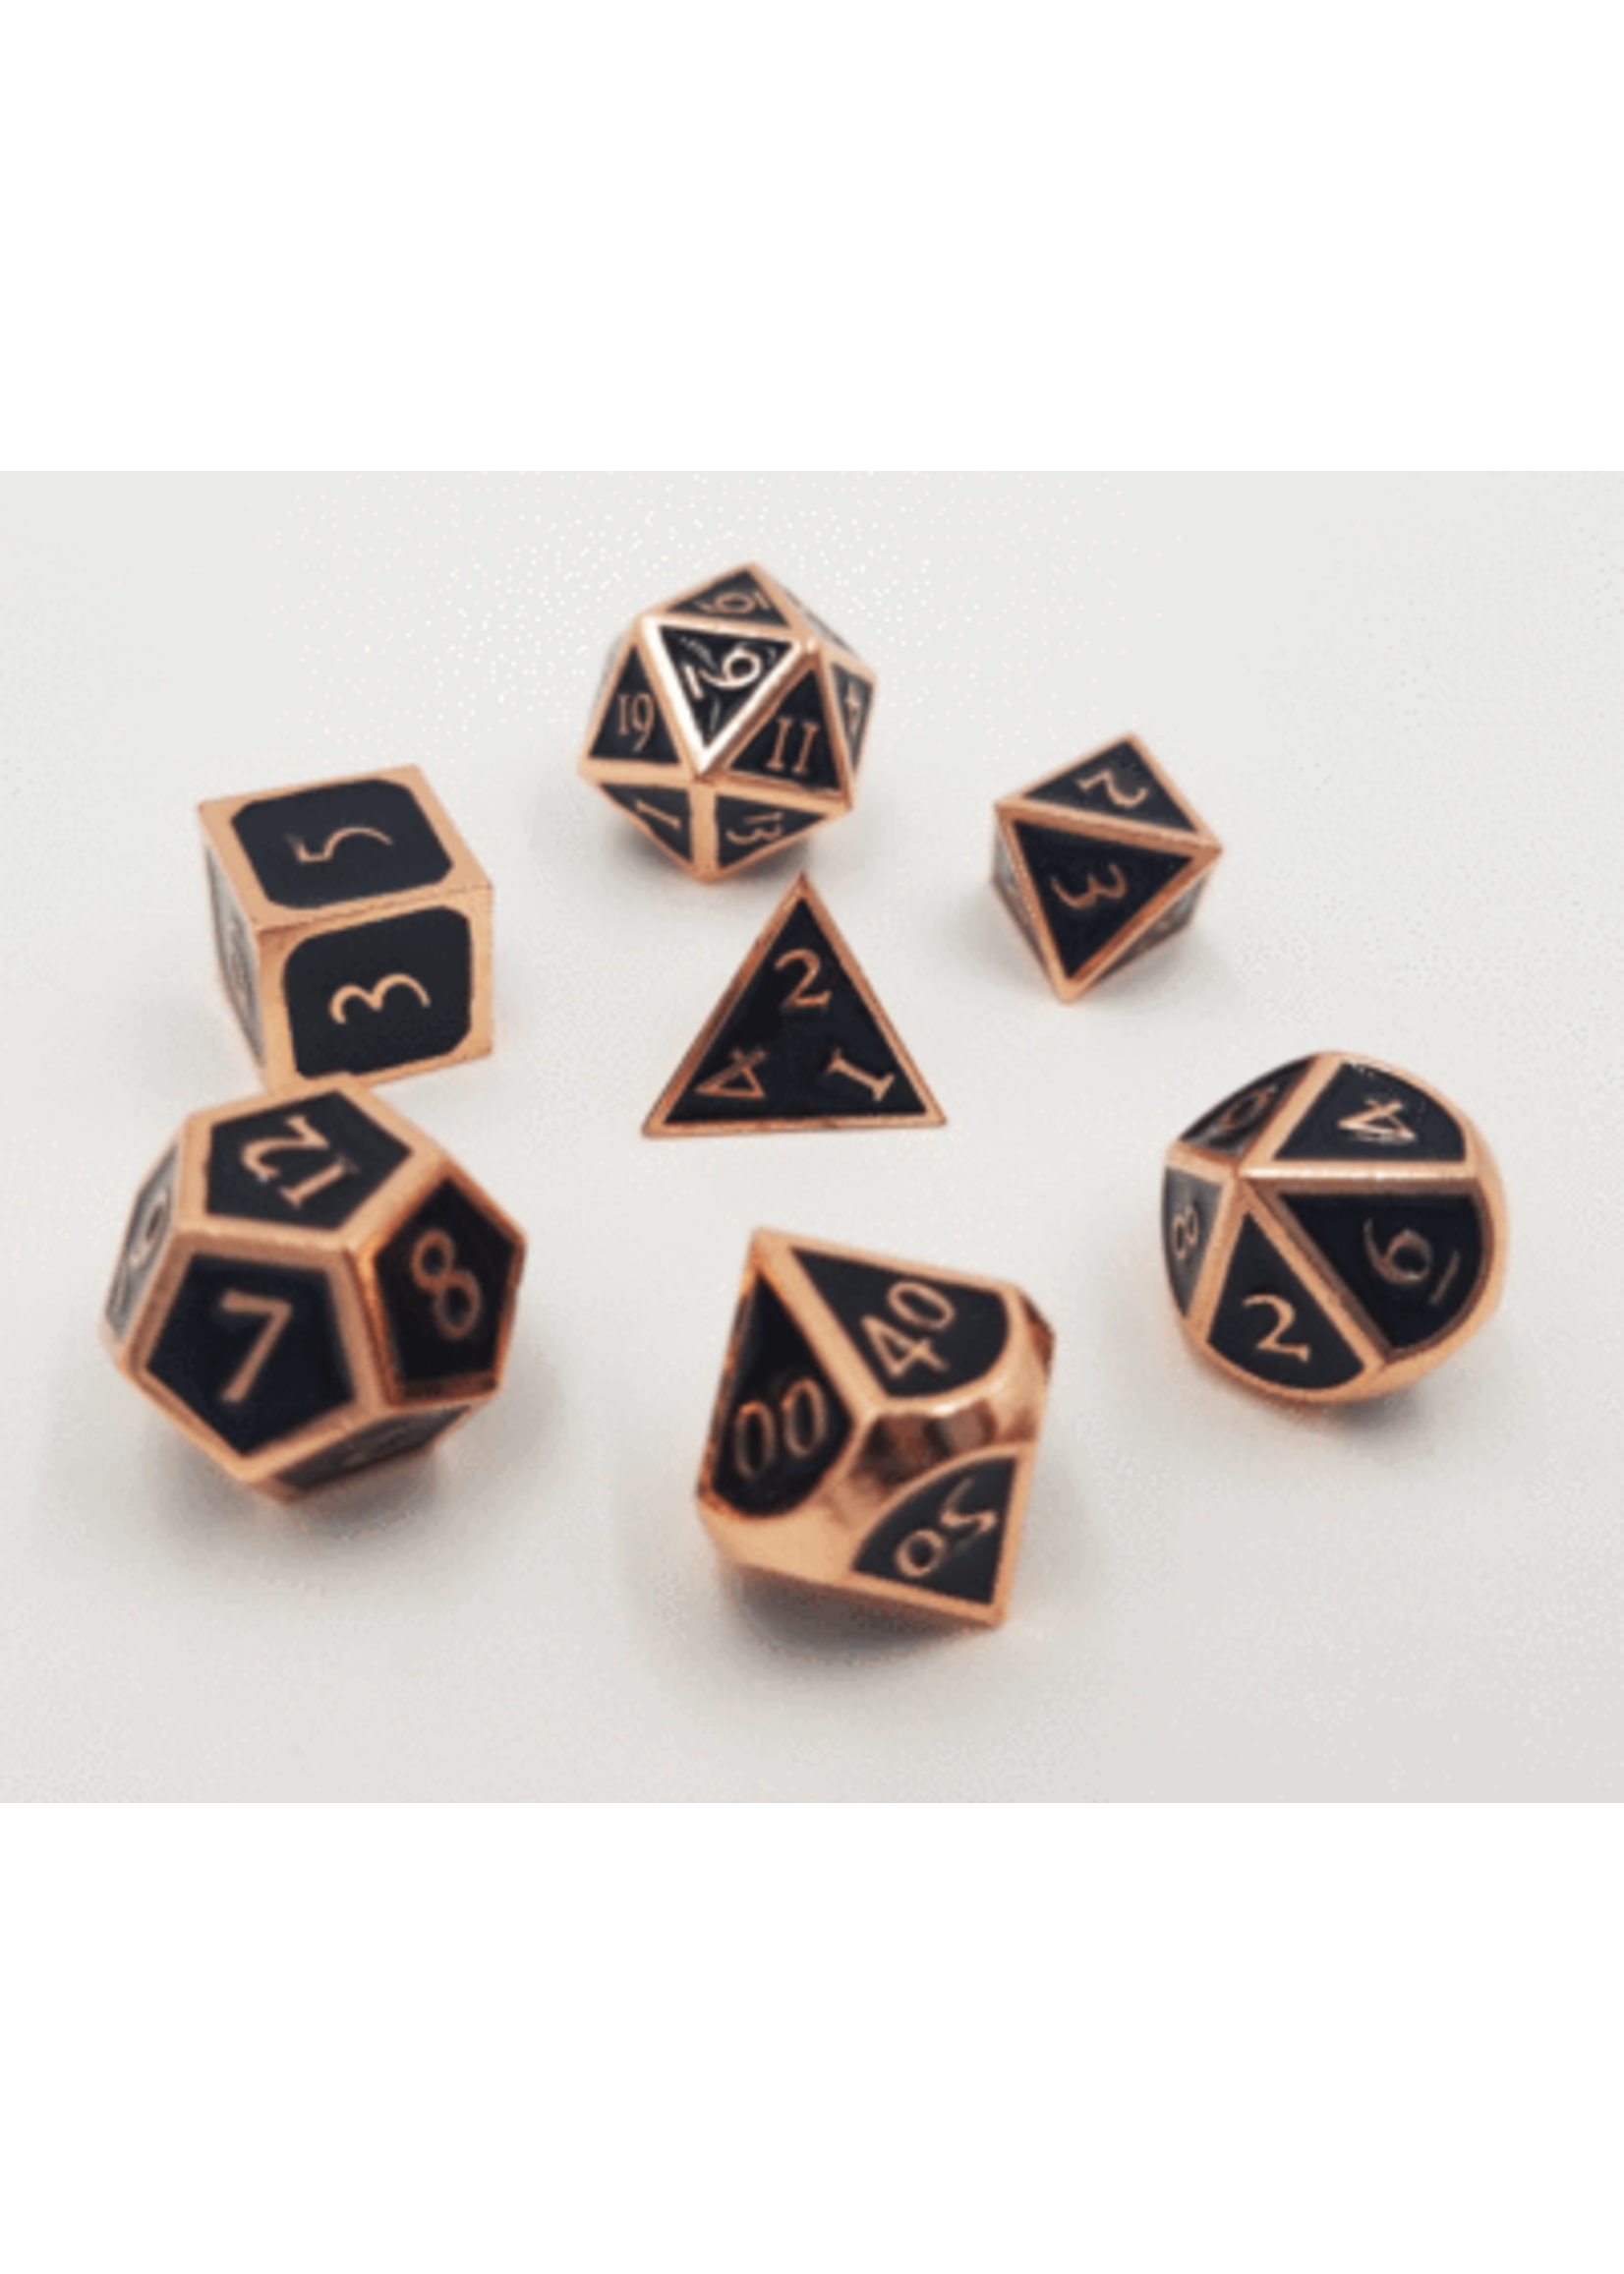 Copper with Onyx Metal RPG Dice Set